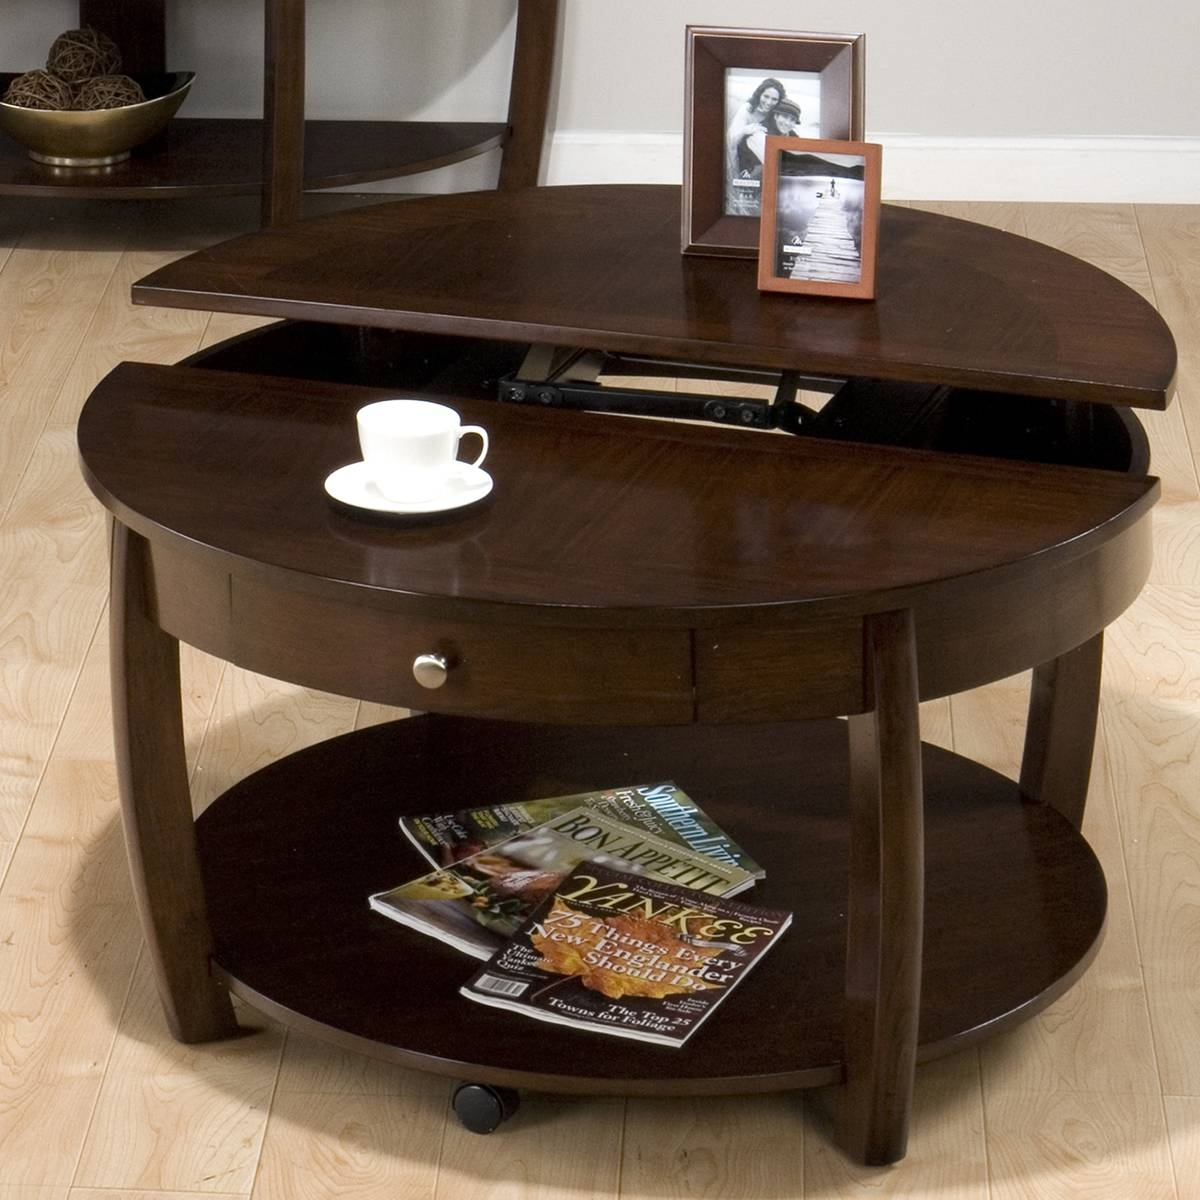 Coffee Tables: Cool Coffee Tables With Storage Ideas Distressed within Circular Coffee Tables With Storage (Image 15 of 30)